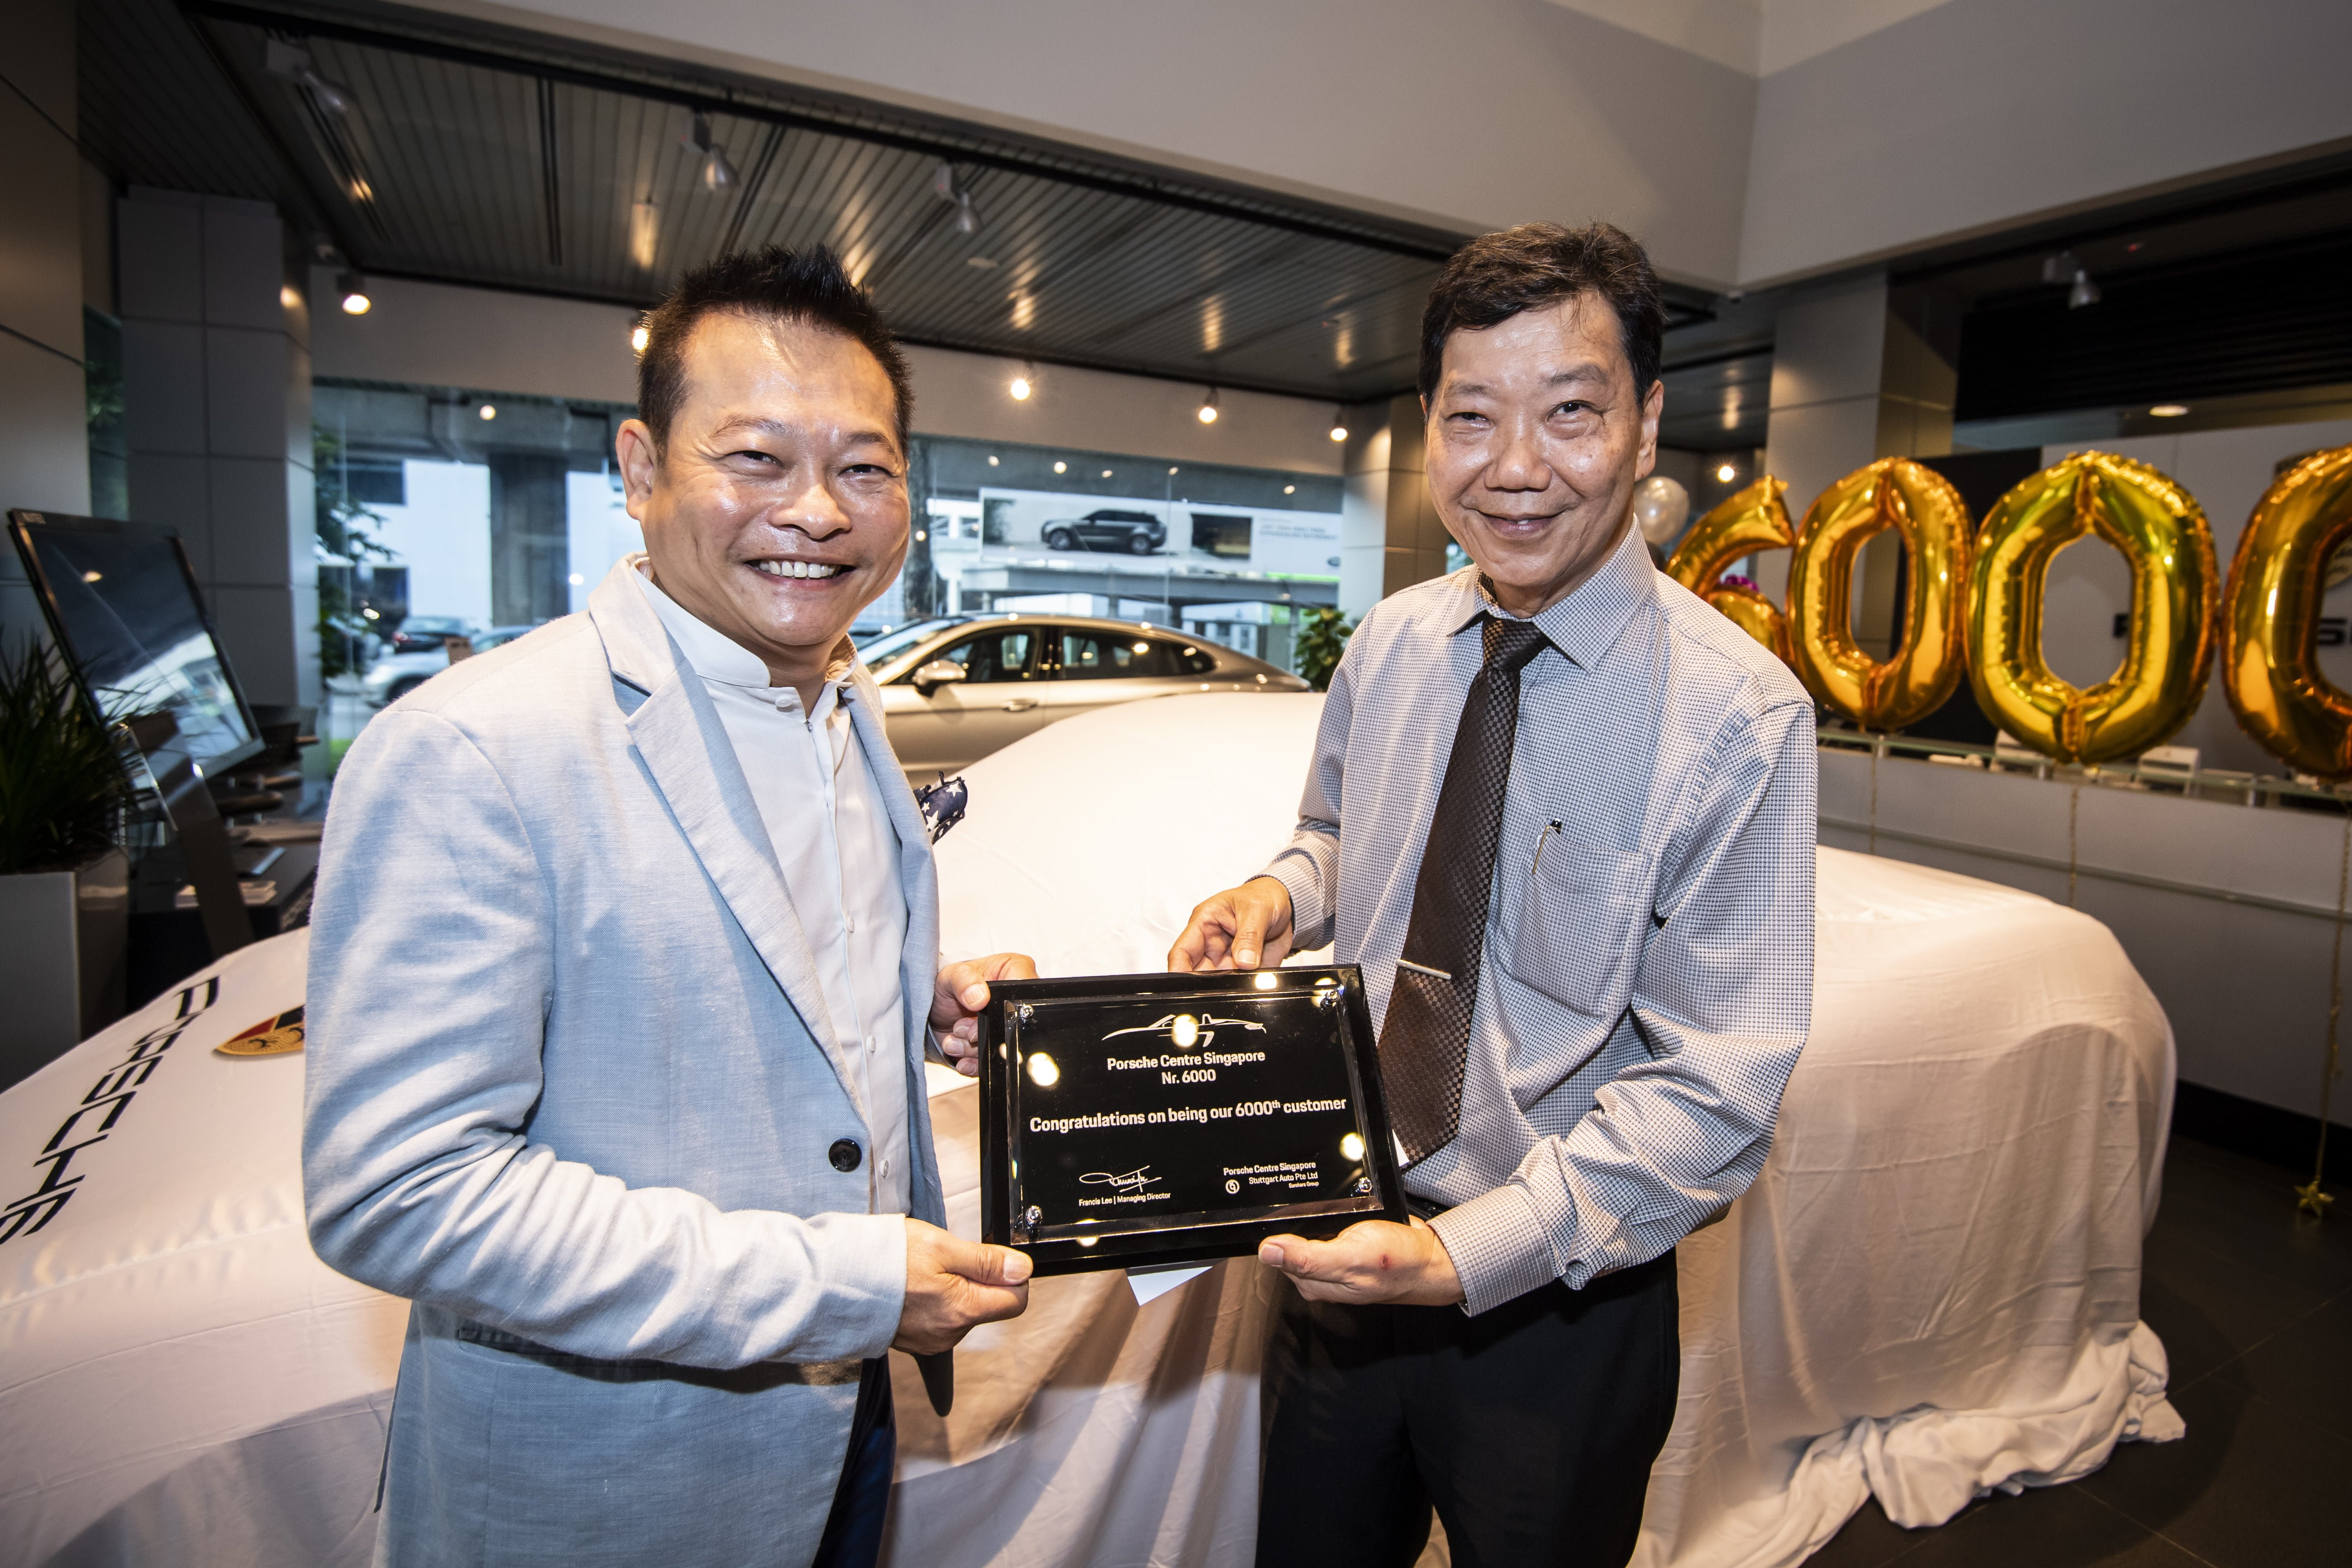 Mr Francis Lee, Managing Director of Stuttgart Auto (right) presenting a commemorative plaque to the new owner of the 6,000th Porsche car in Singapore, Mr Joe Goh